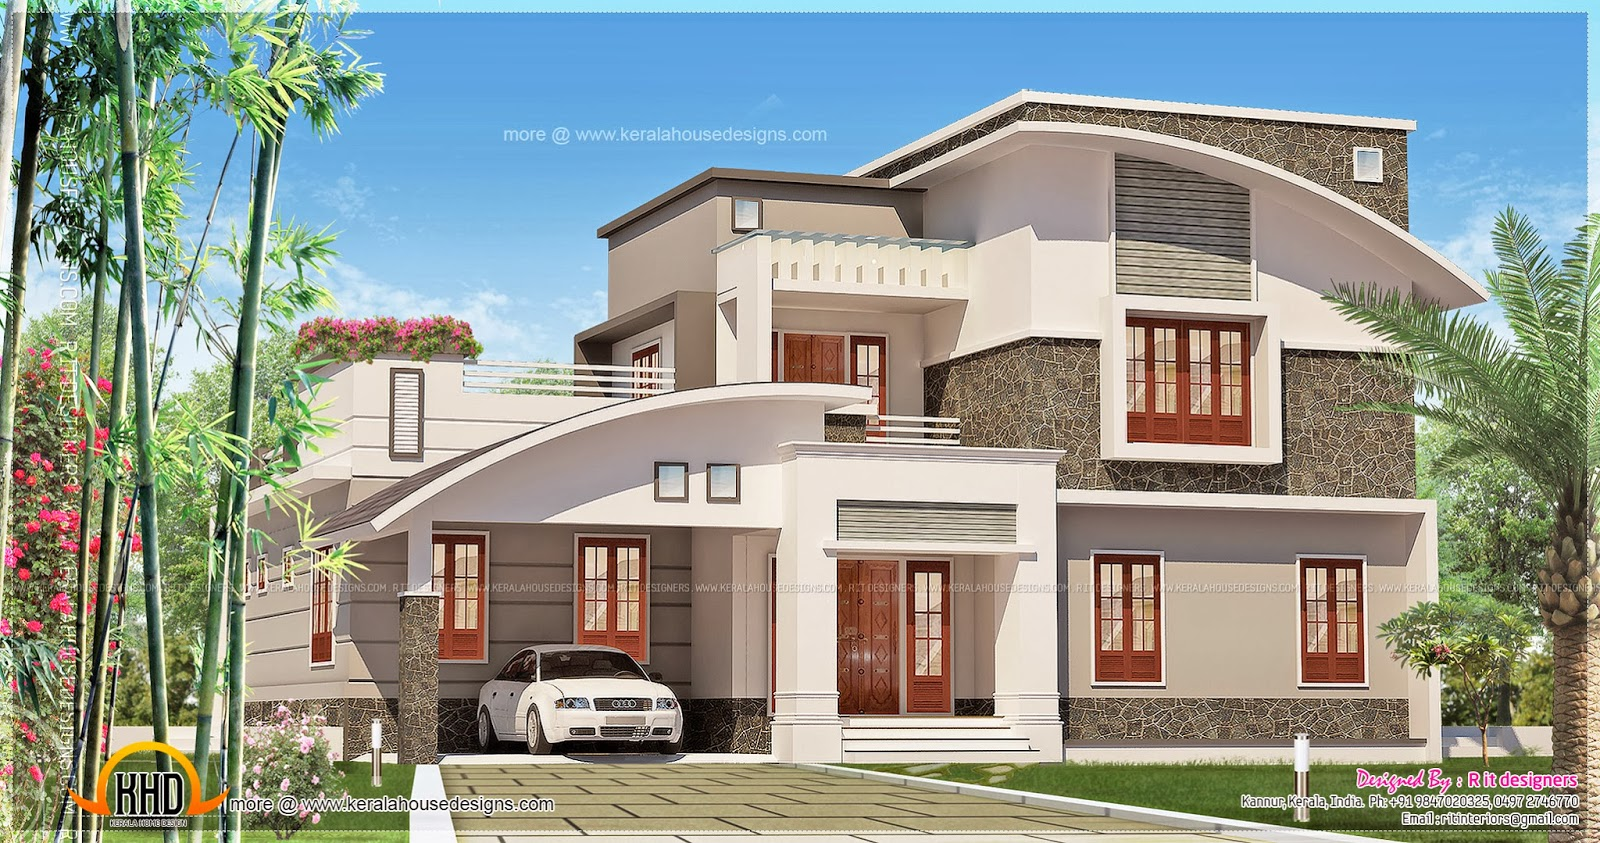 3 bedroom contemporary mix house exterior kerala home for 2 bedroom house designs in india